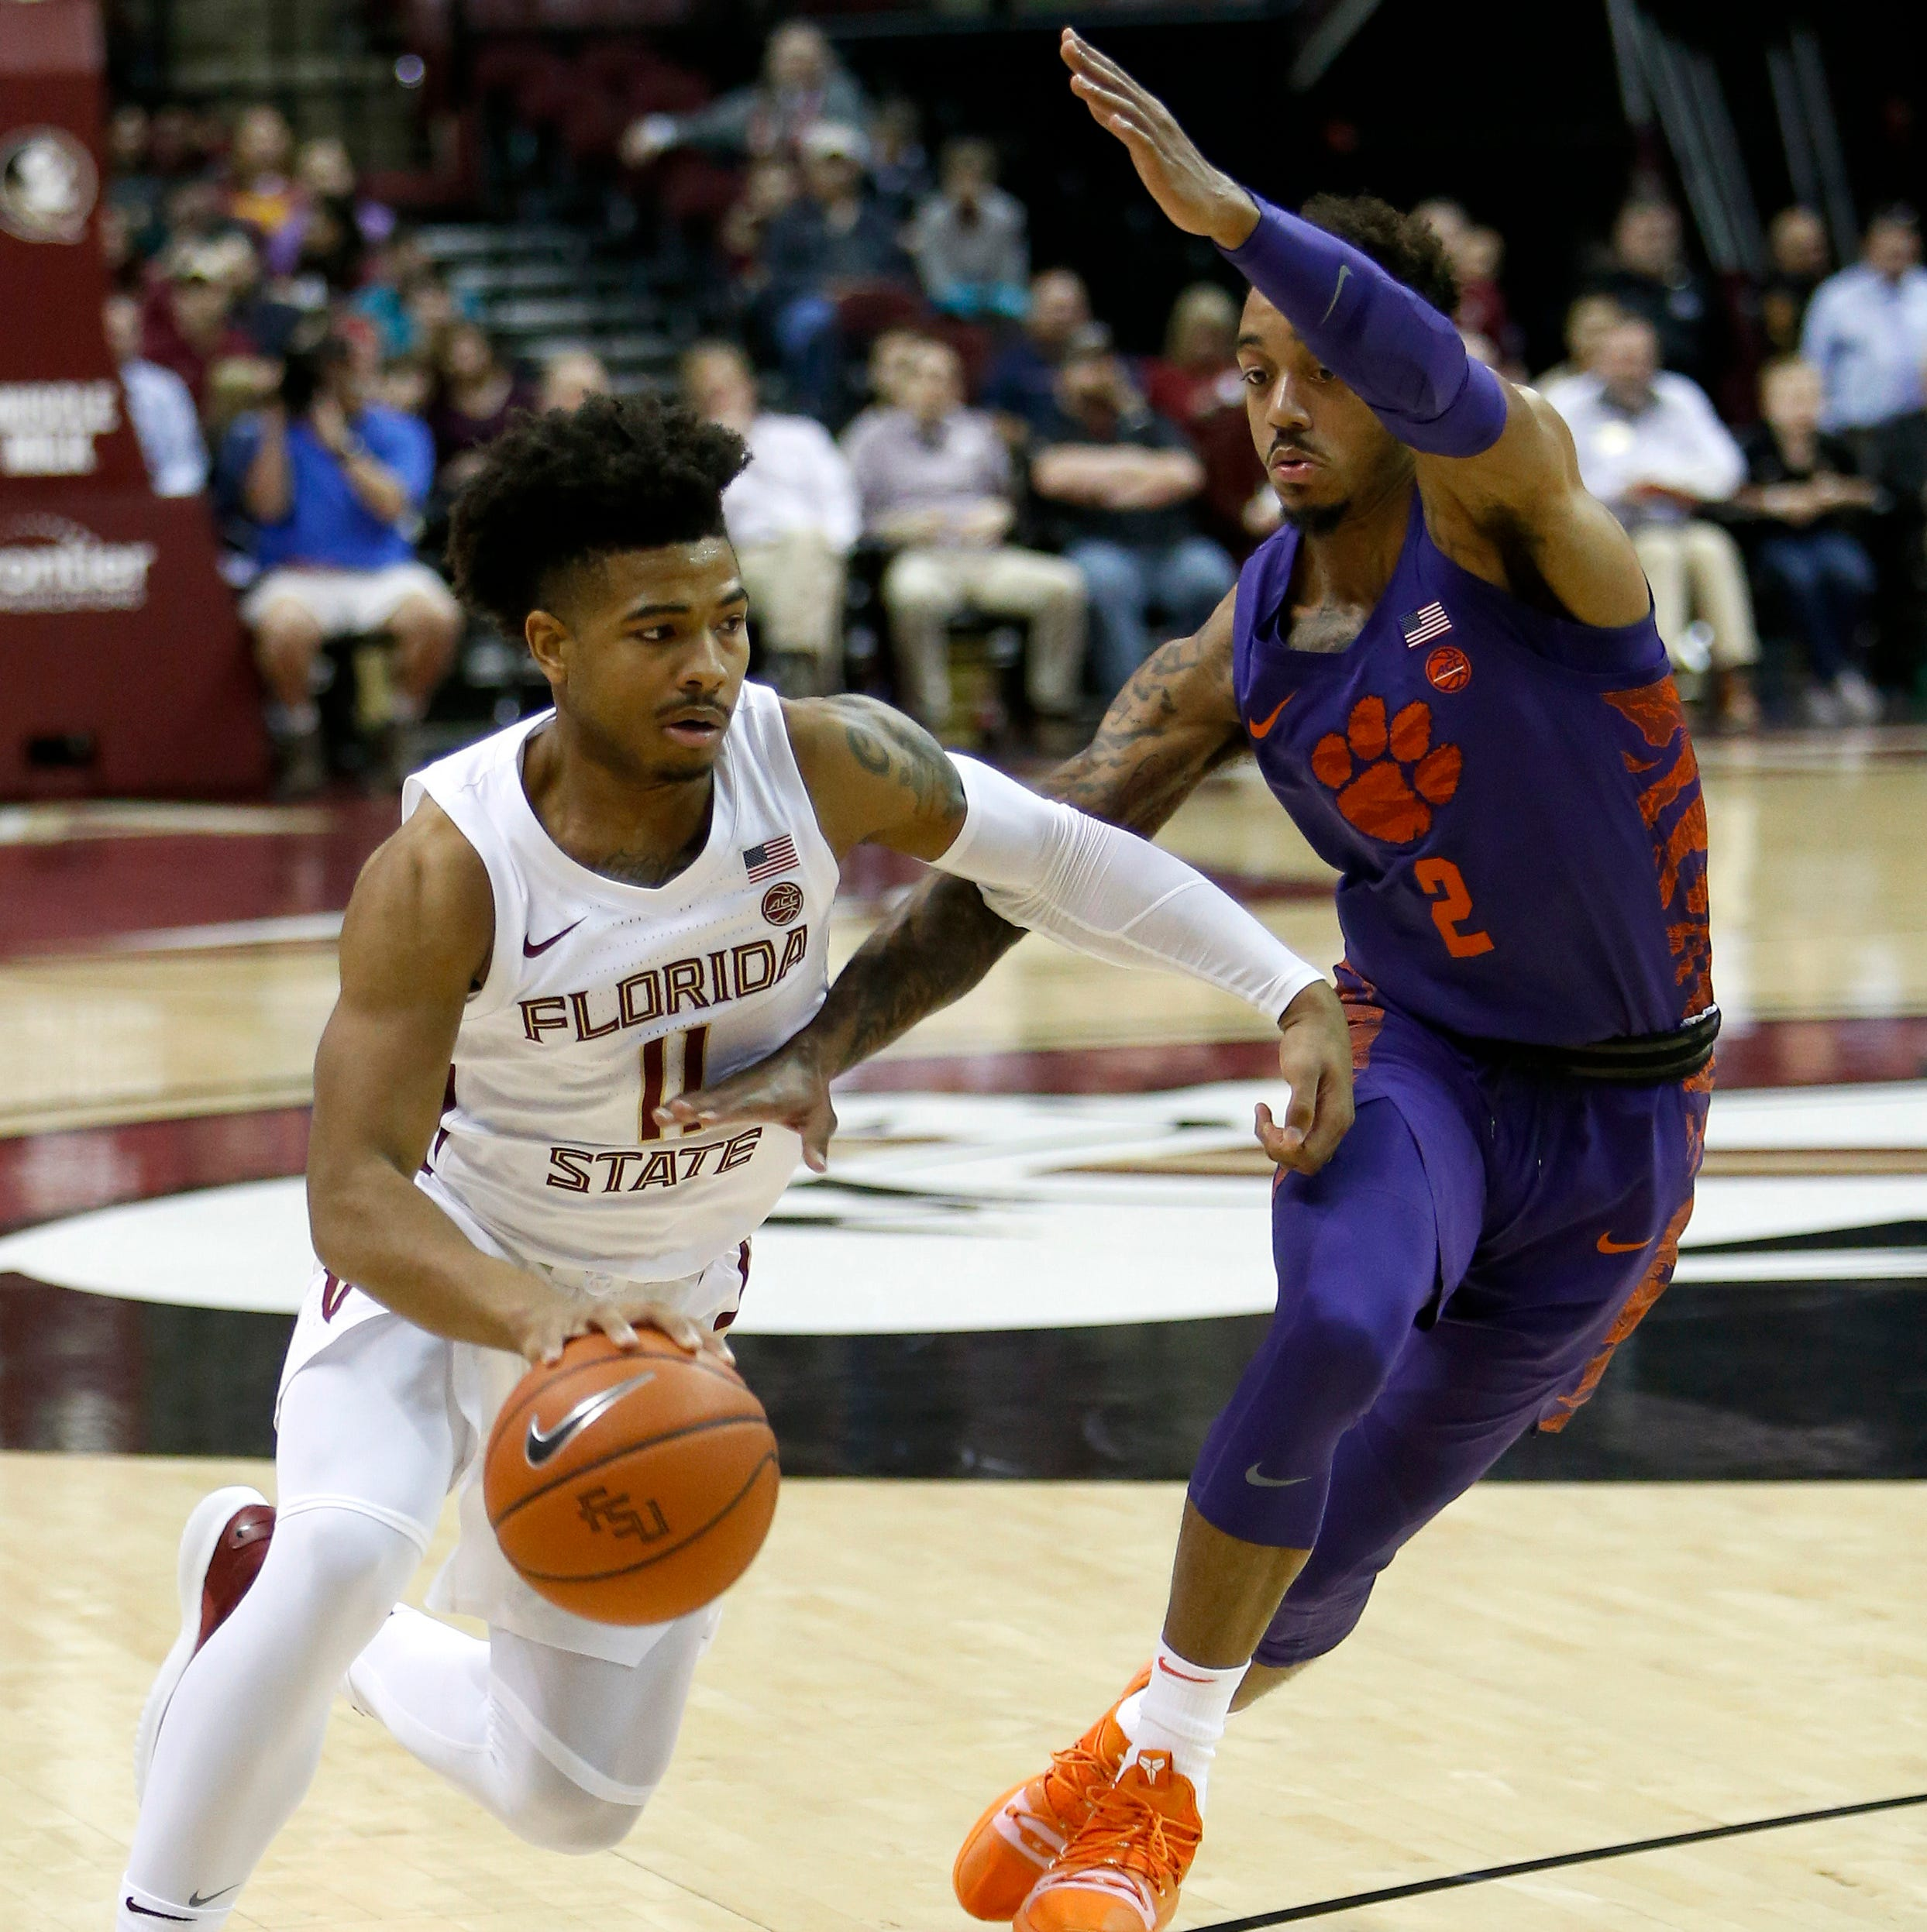 Florida State rebounds with win over Clemson